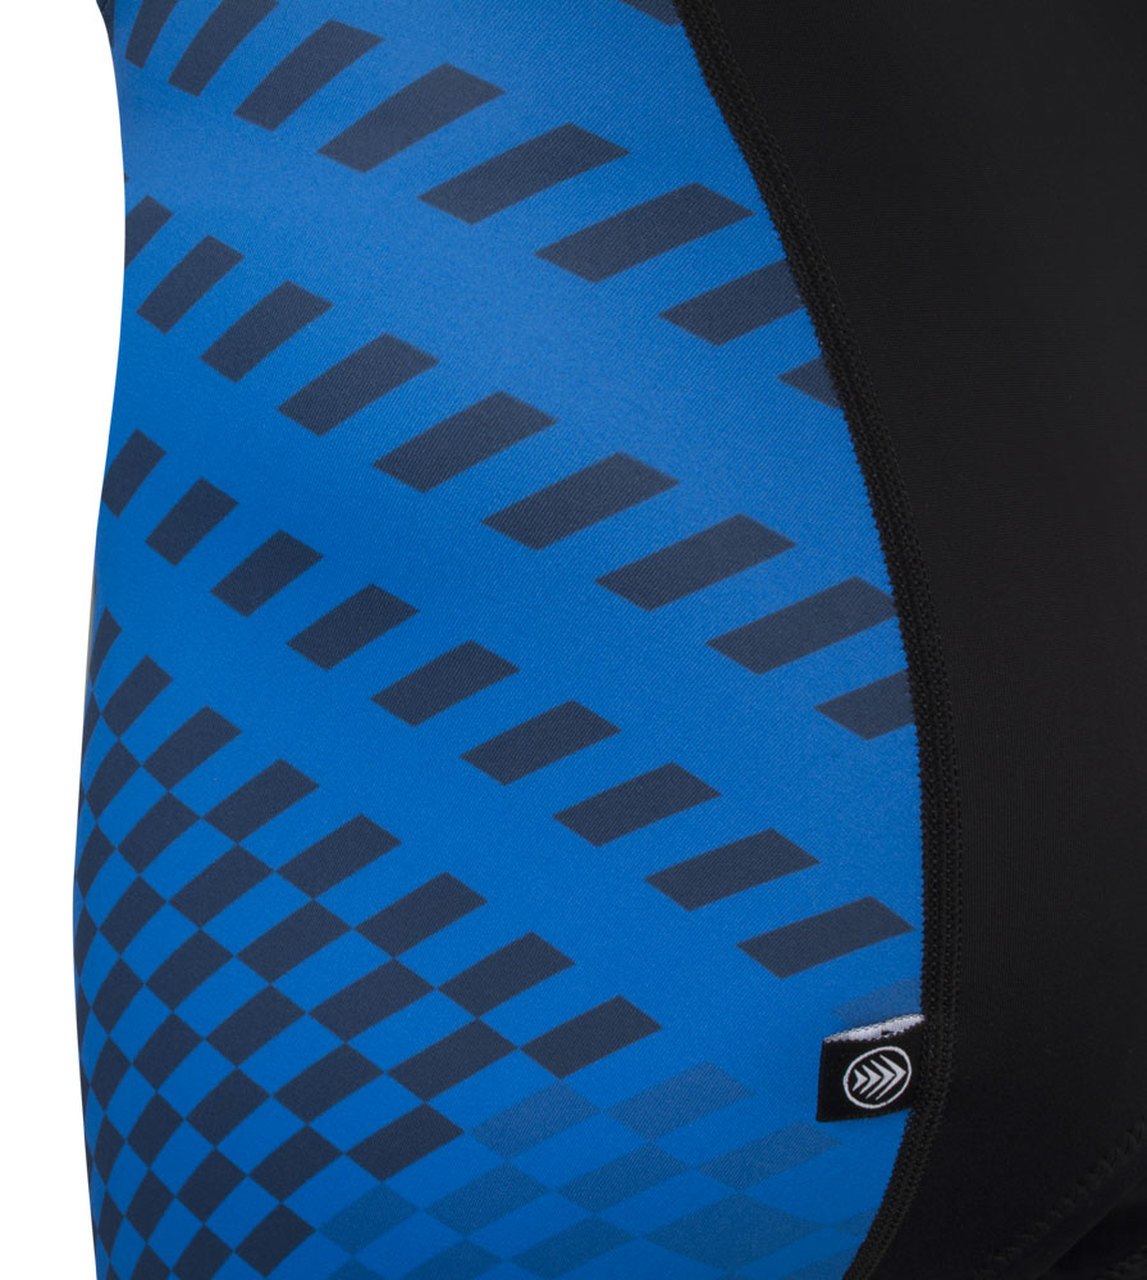 atd-power-tread-padded-bike-shorts-made-in-usa-print.jpg